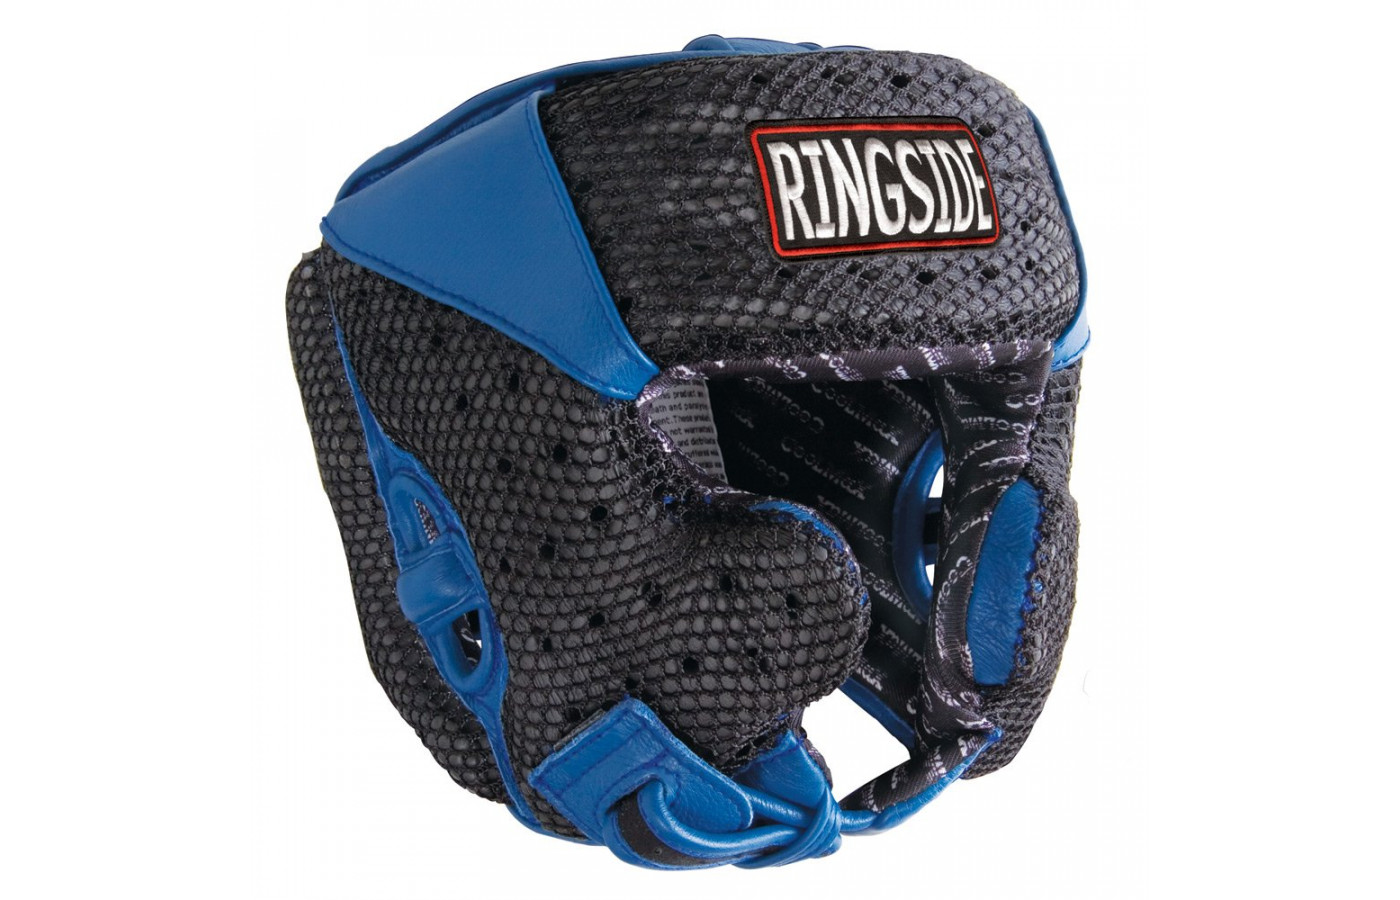 ringside air max headgear